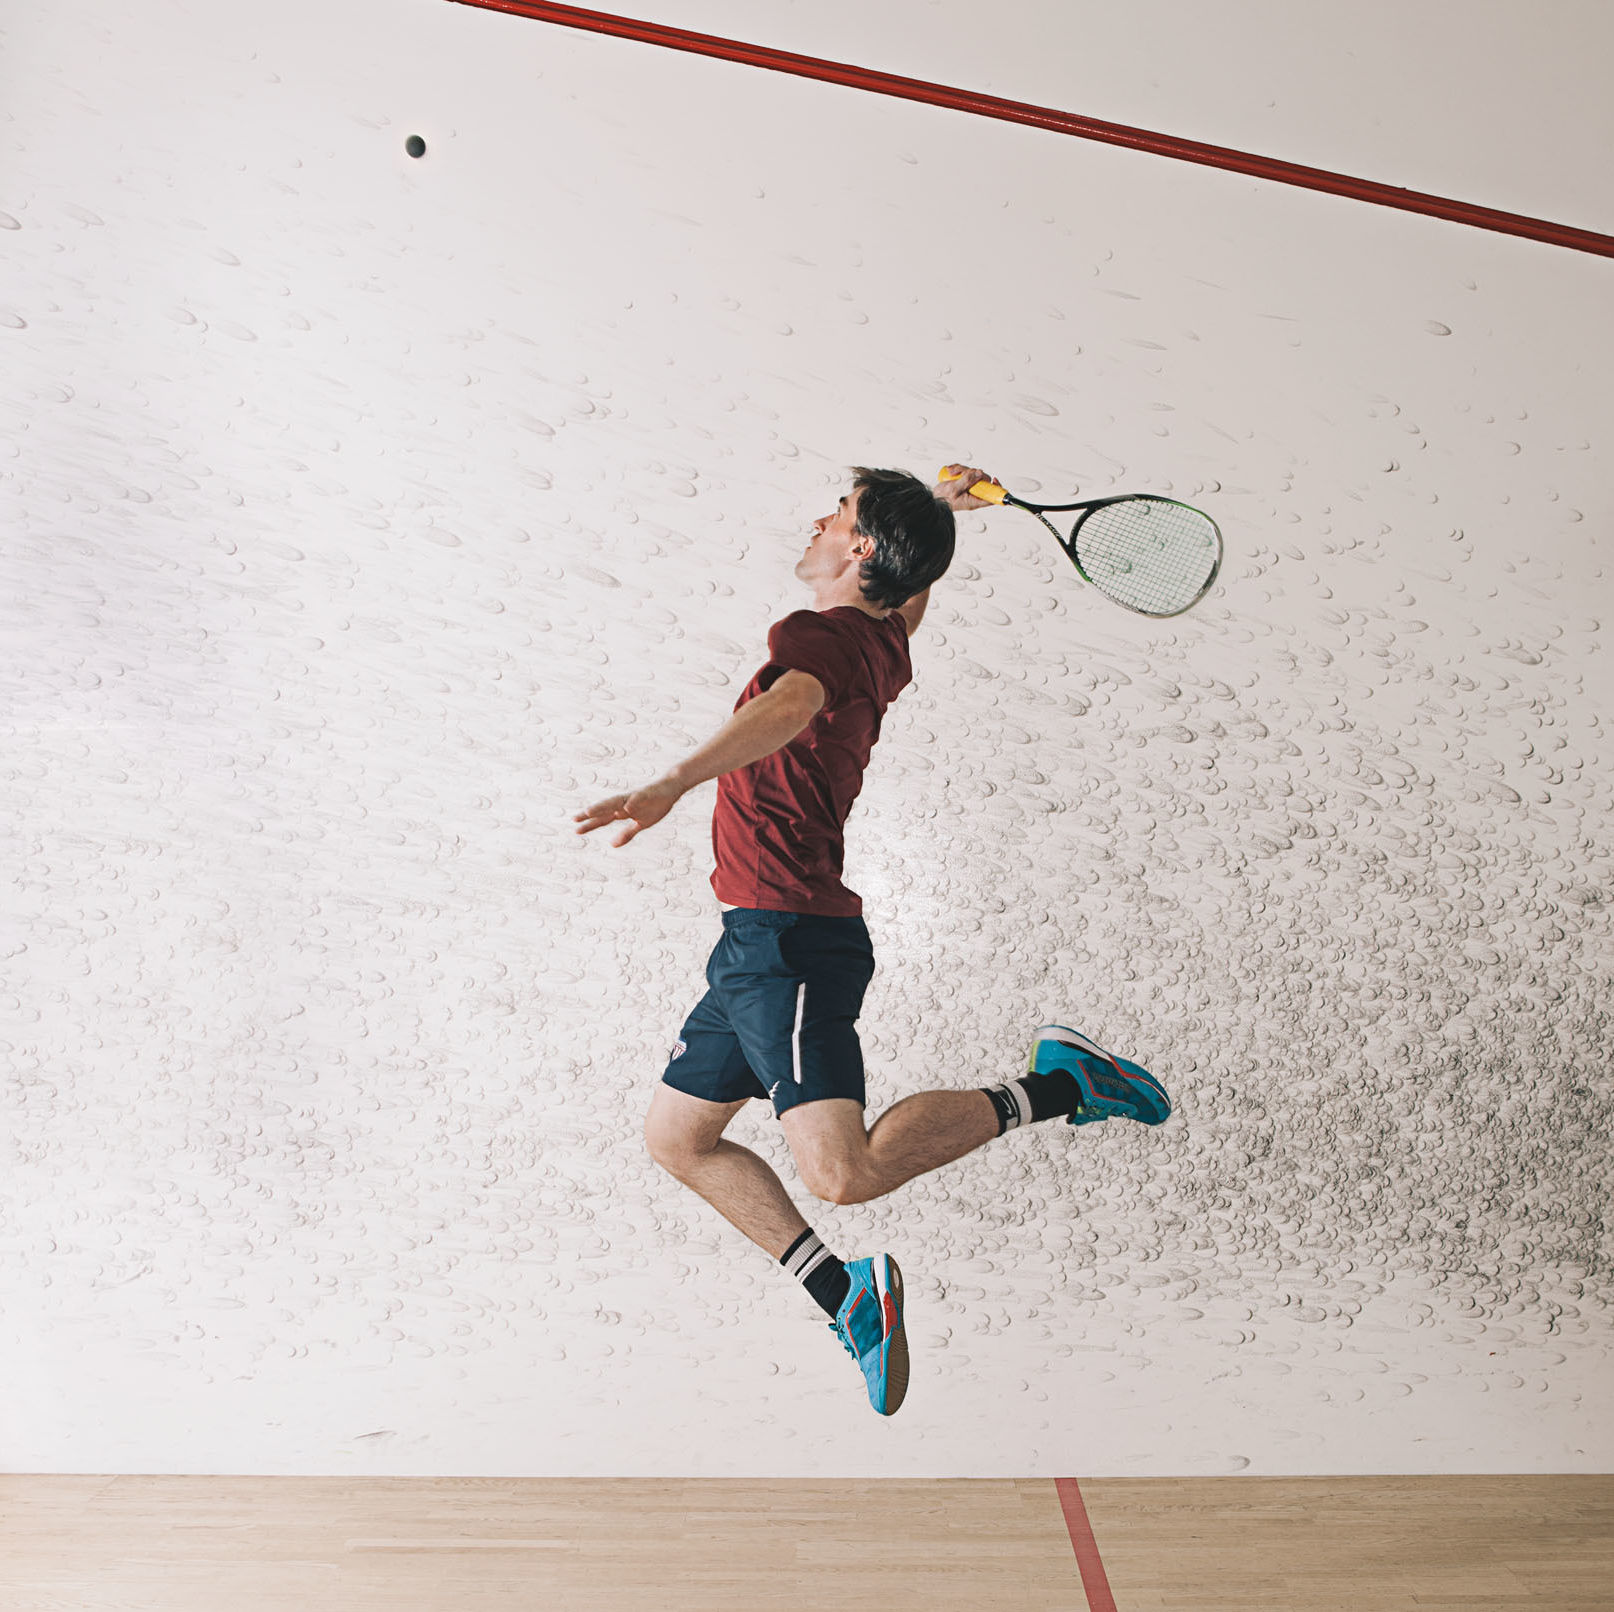 Pomo 0117 lss julian illingworth squash player fw1aia